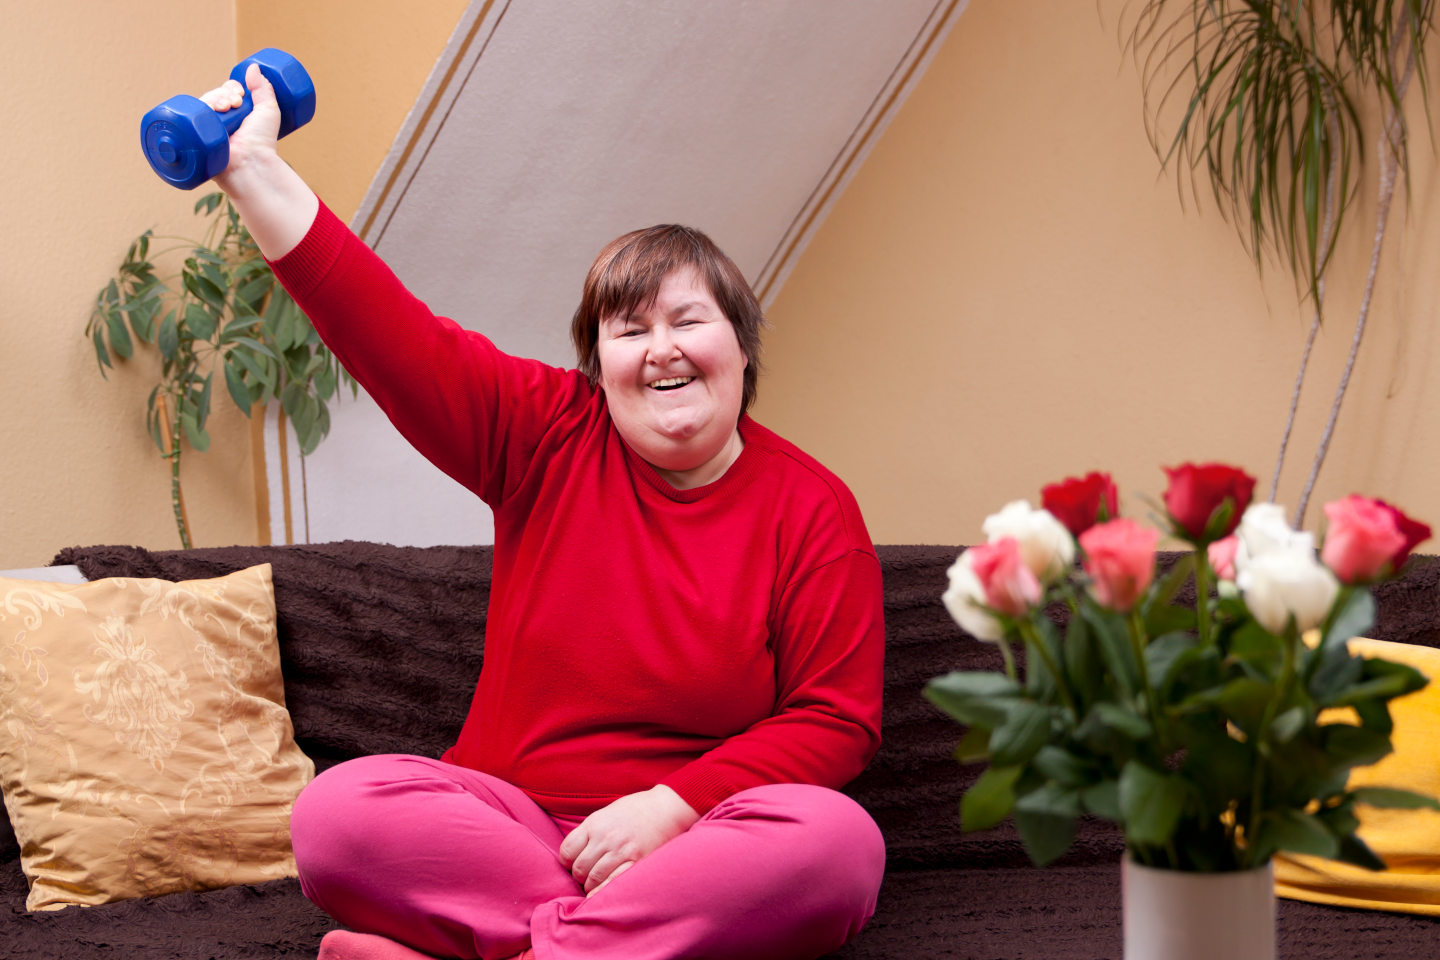 Mentally disabled woman shows her strength with a dumbbell